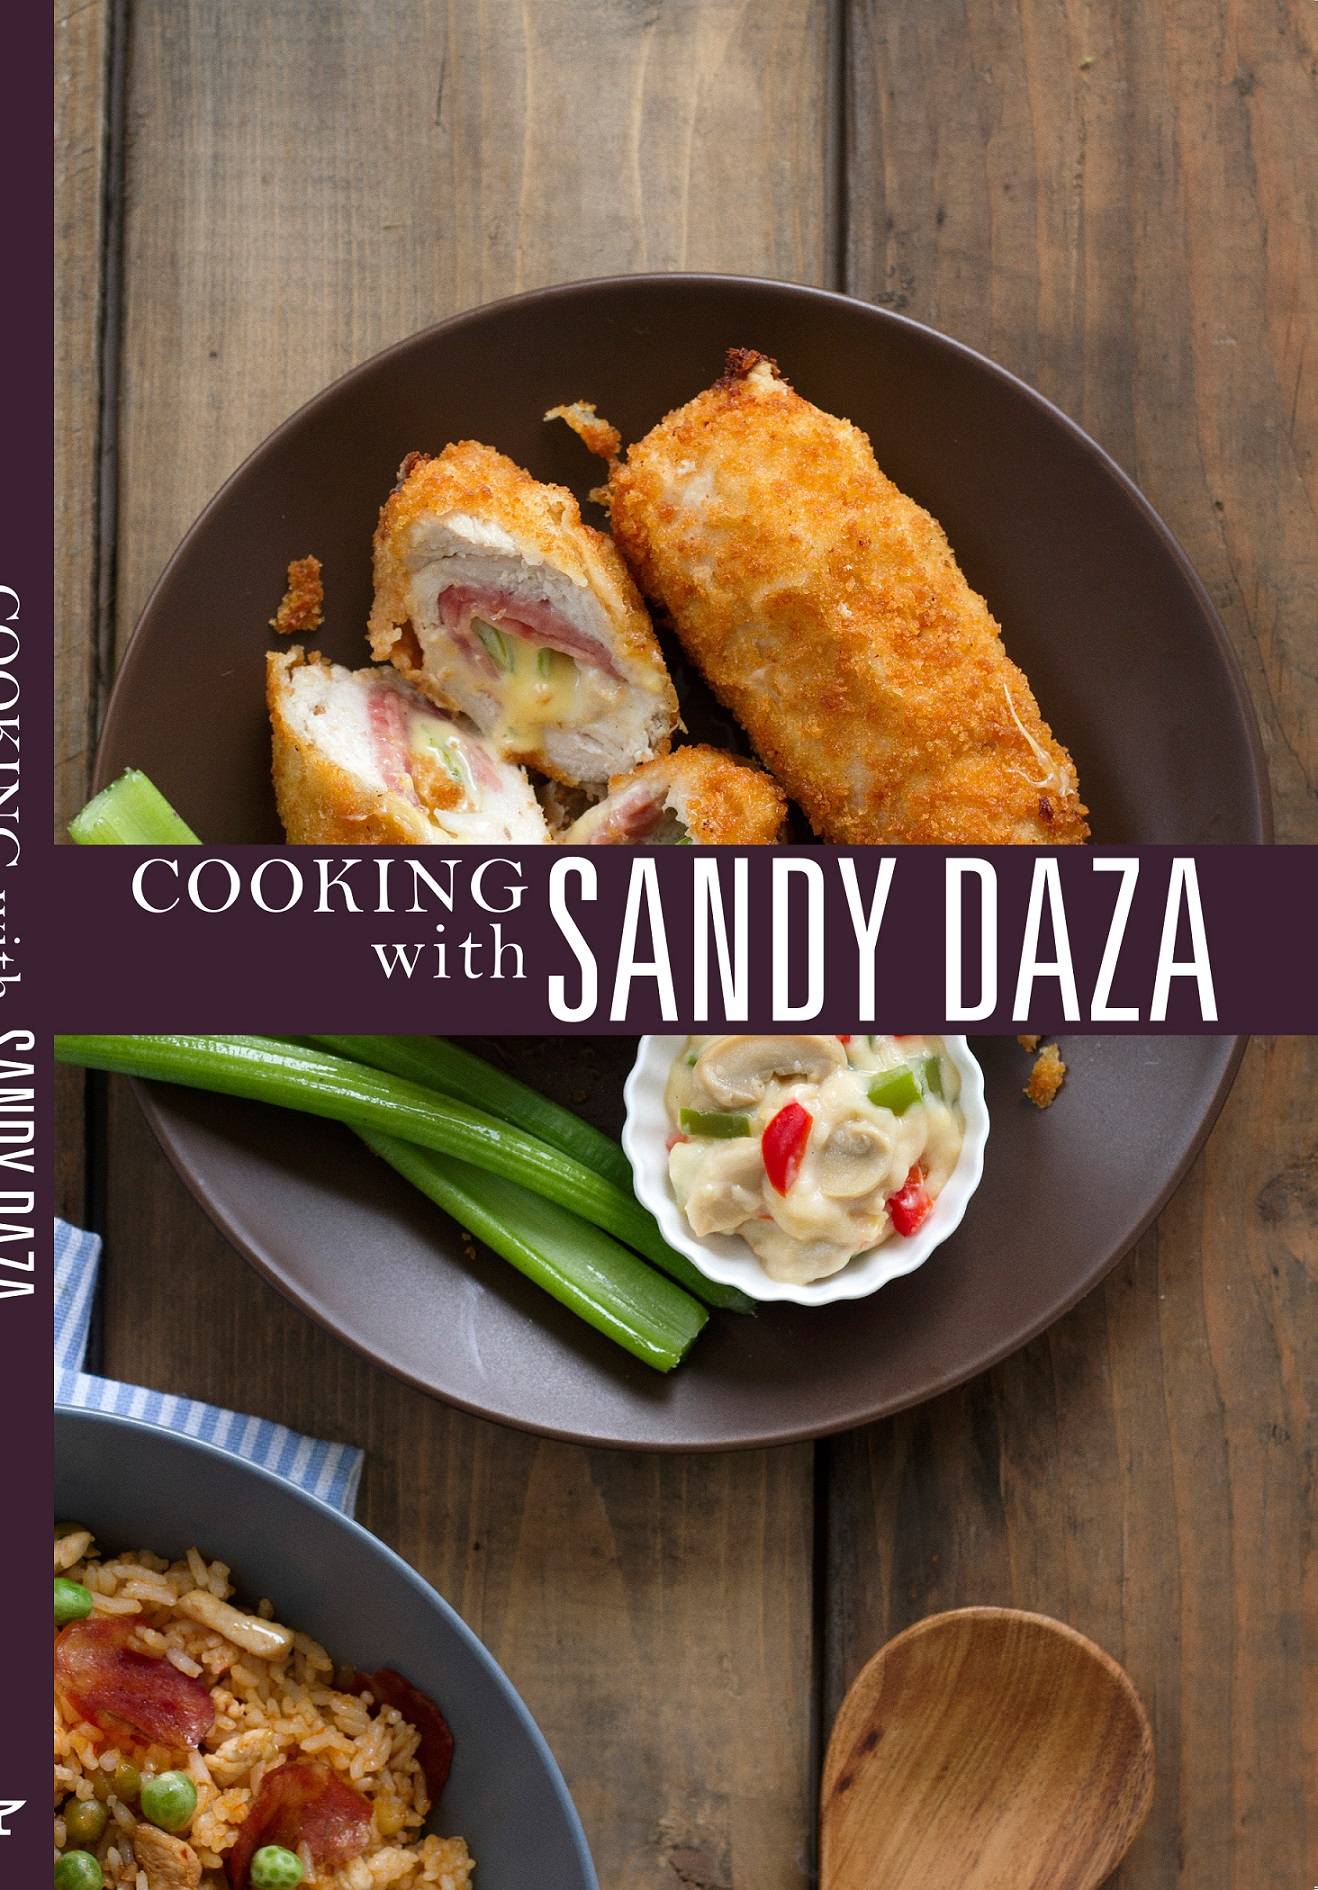 Cooking with Sandy Daza